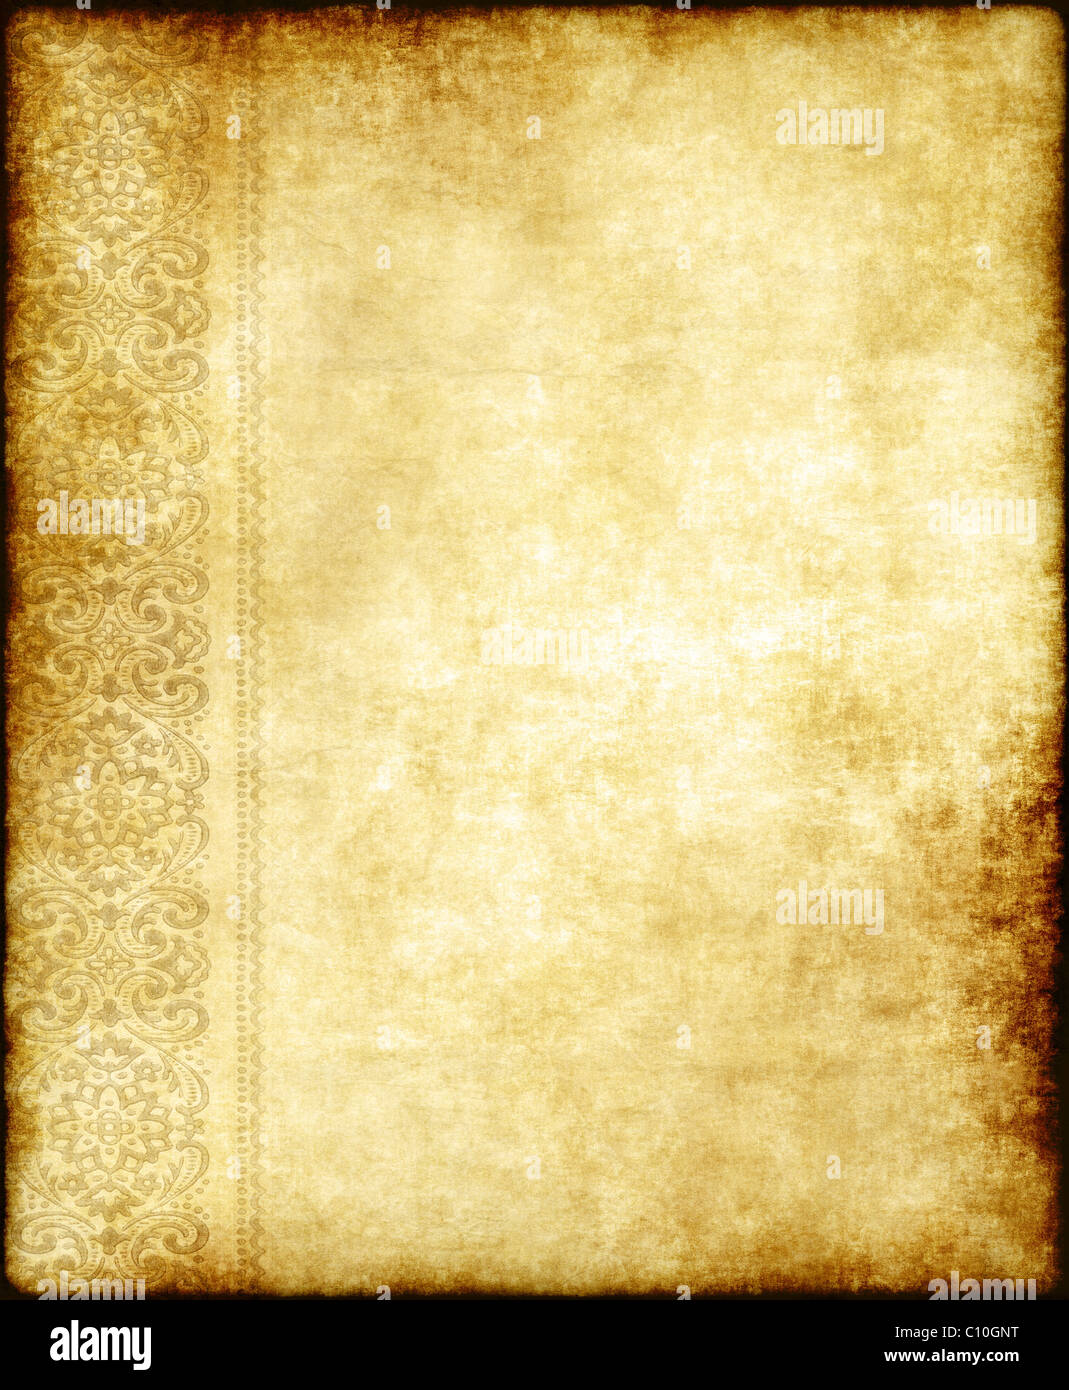 old parchment paper background with ornate edging design - Stock Image